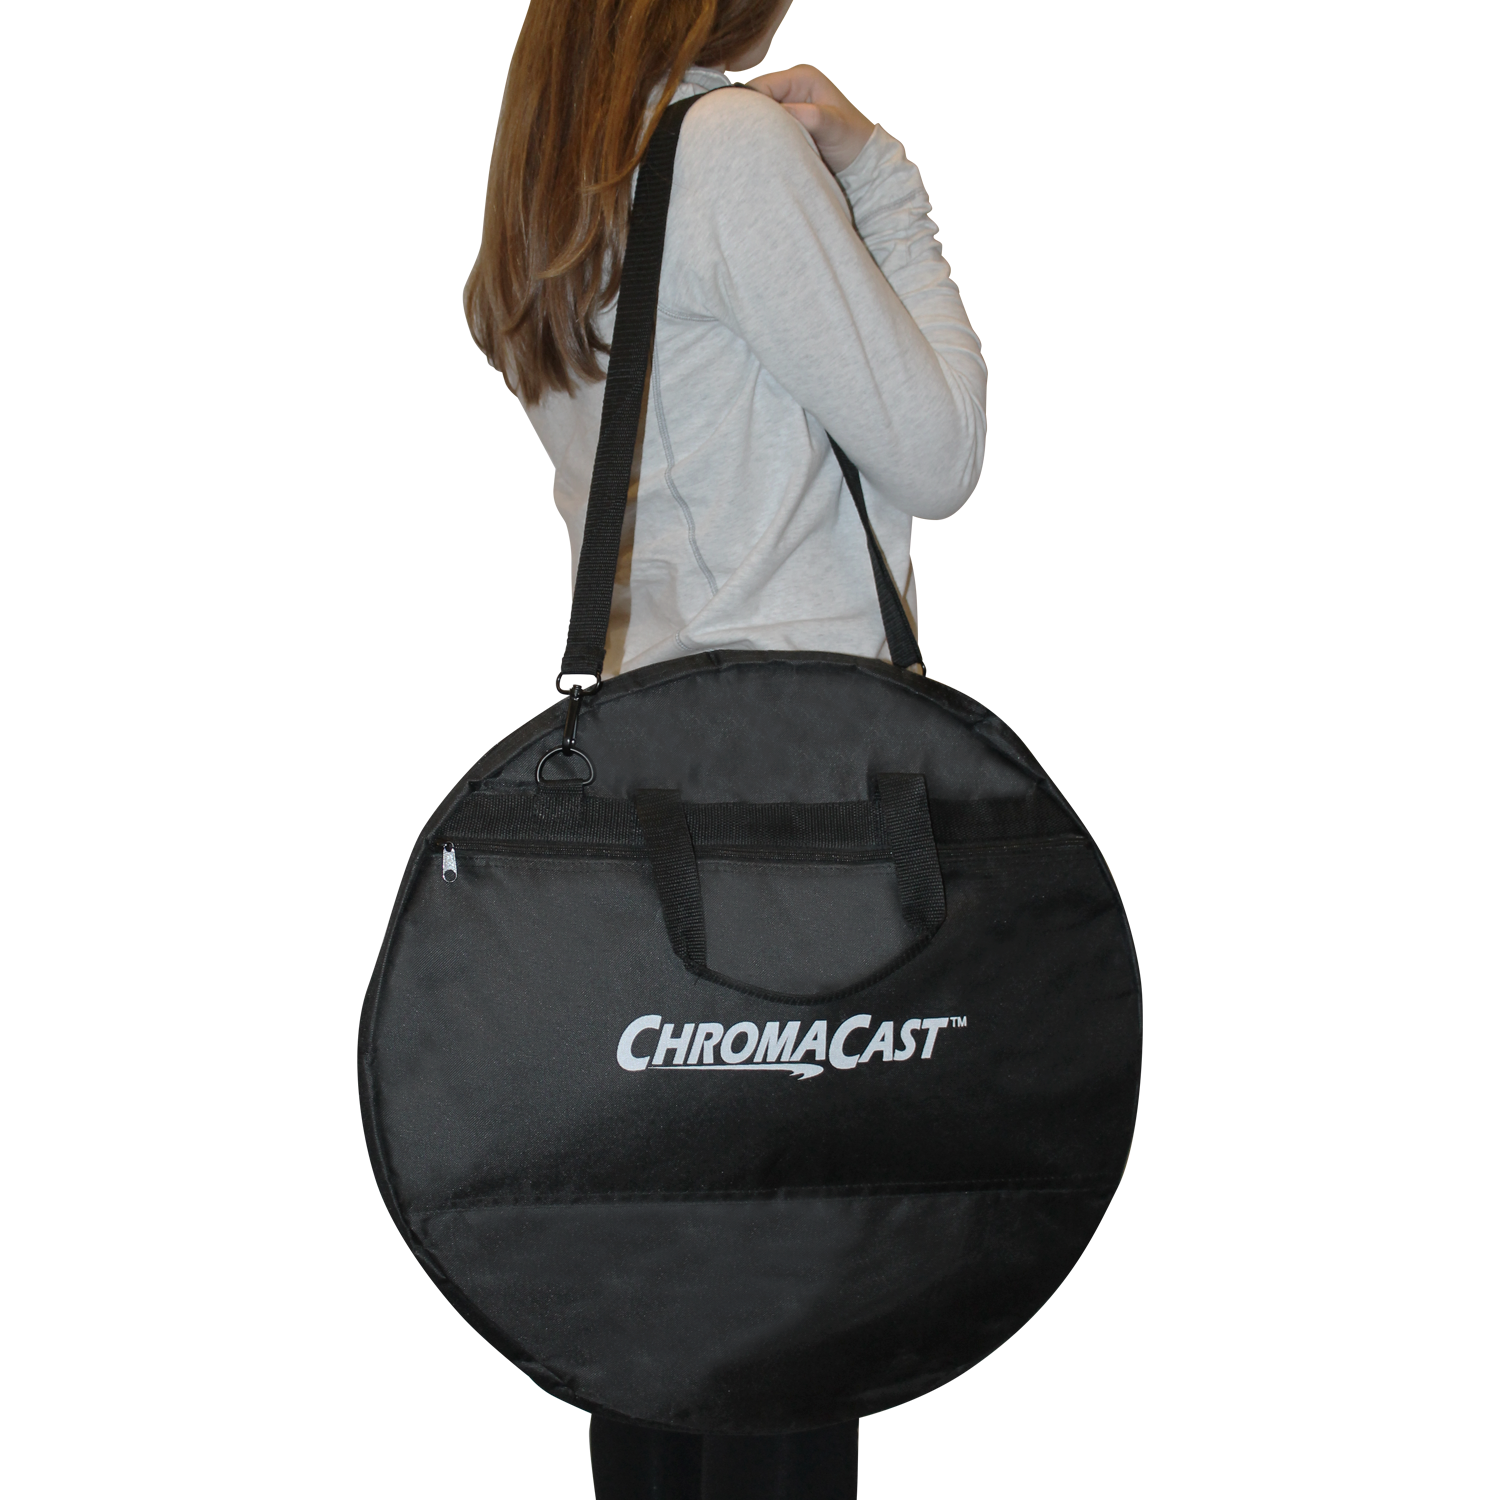 Cymbal Bag with Strap